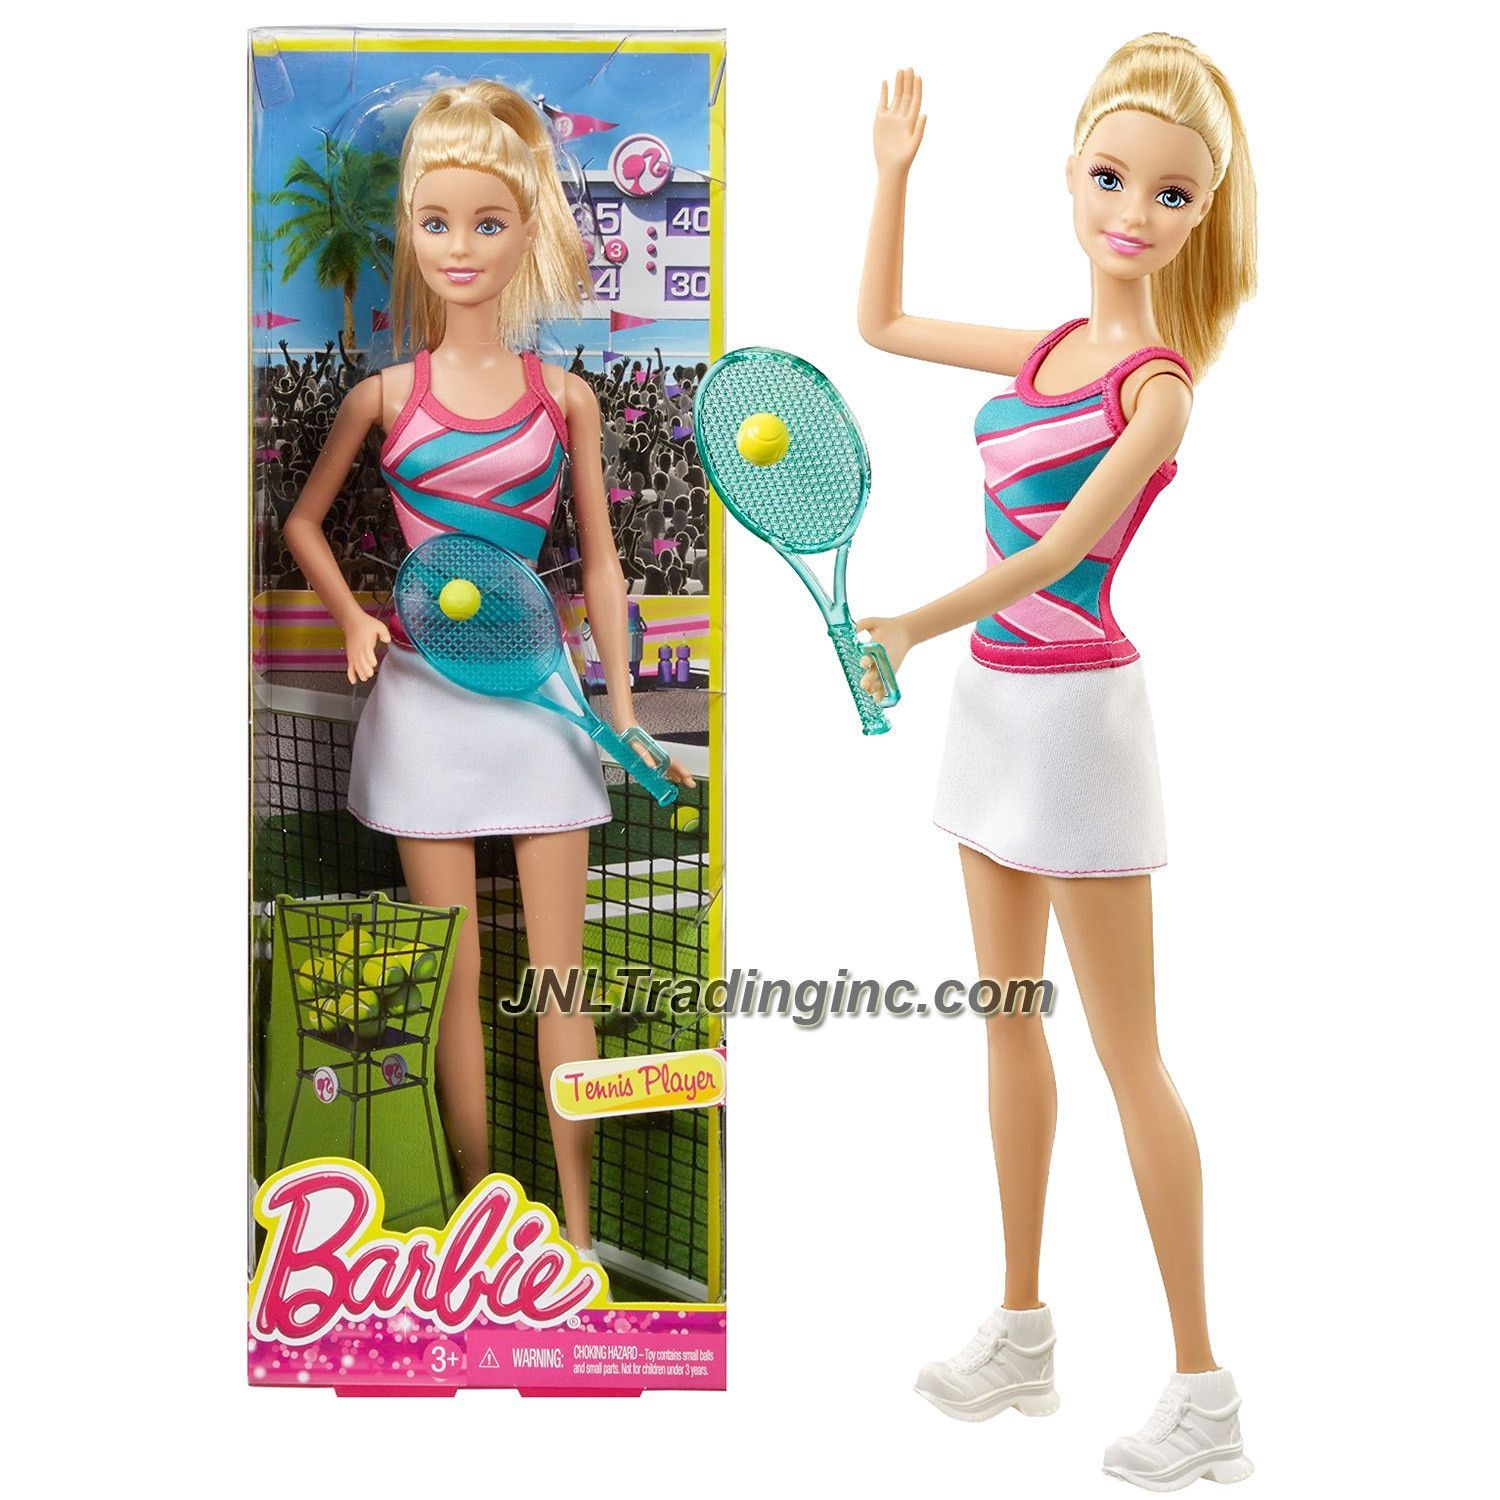 Barbie deluxe furniture stovetop to tabletop kitchen doll target - Mattel Year 2014 Barbie Career Series 12 Inch Doll Barbie As Tennis Player Cfr04 With Tennis Racket And Ball